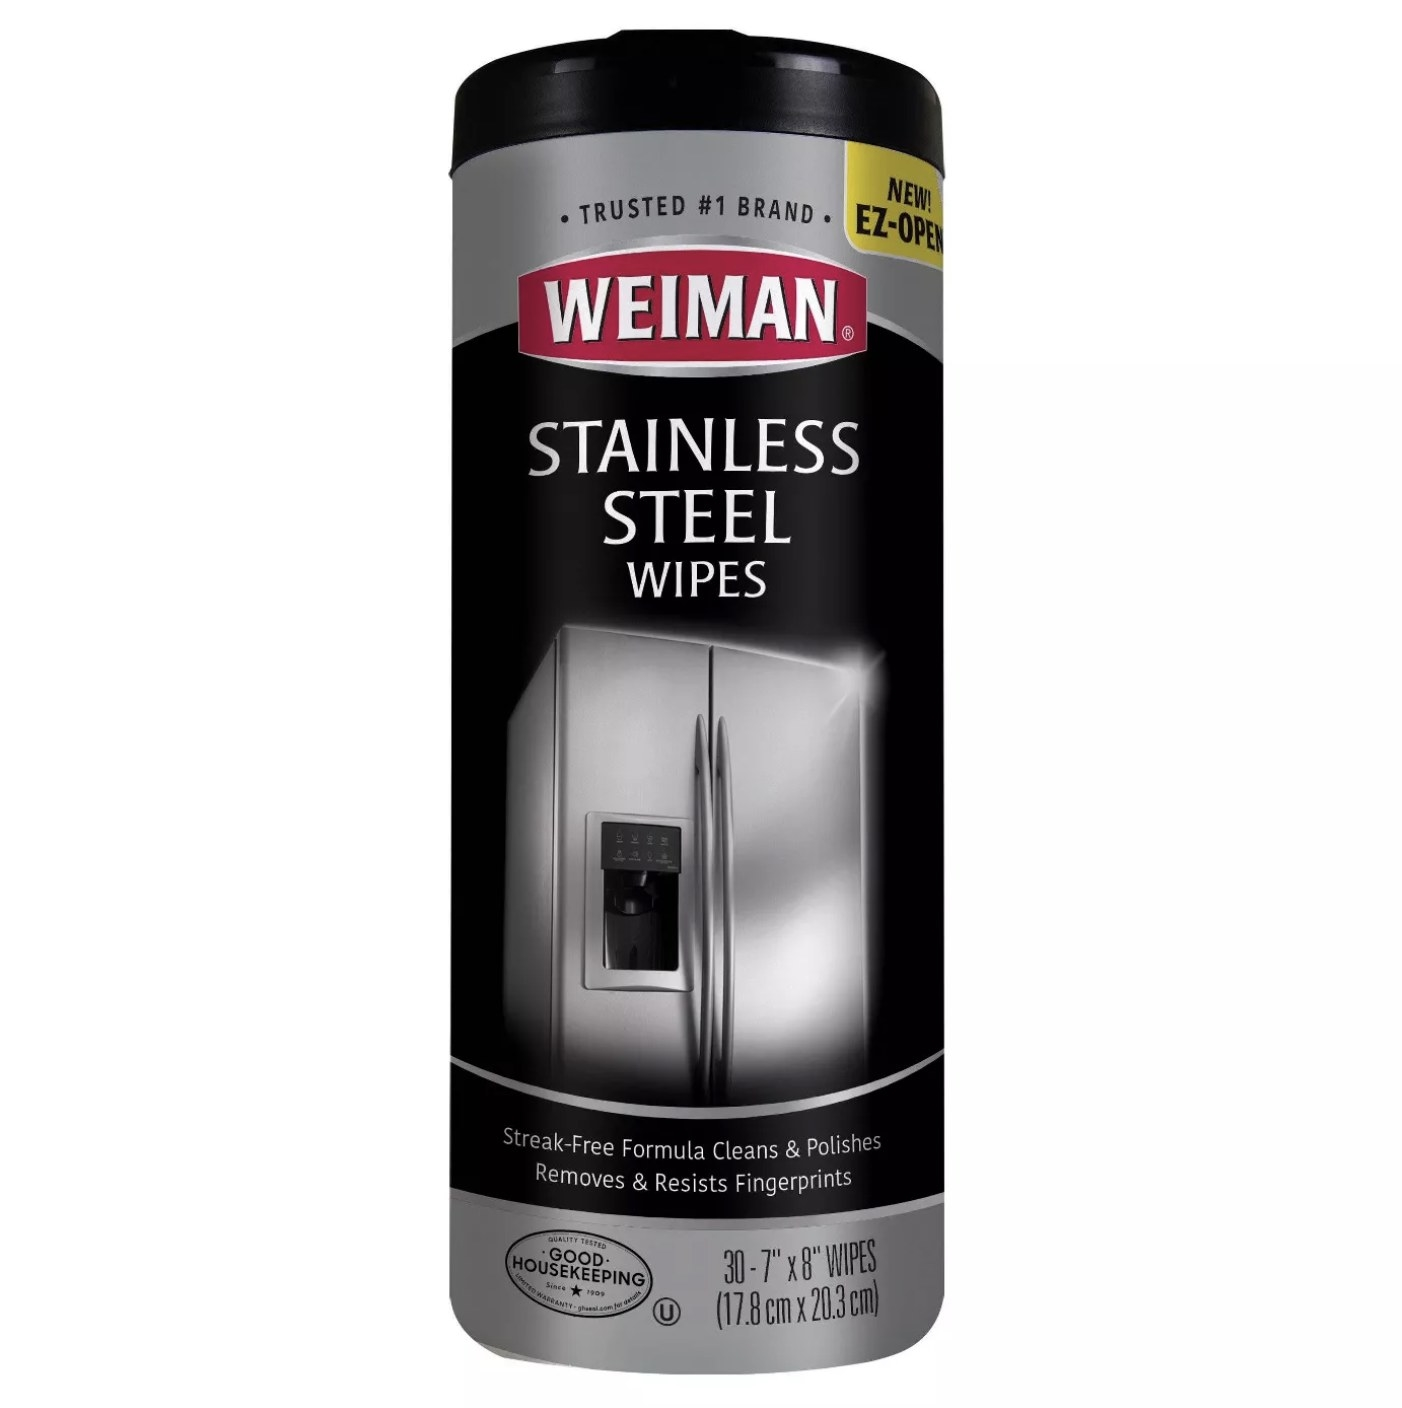 """Silver container that says """"Weiman Stainless Steel Wipes"""""""